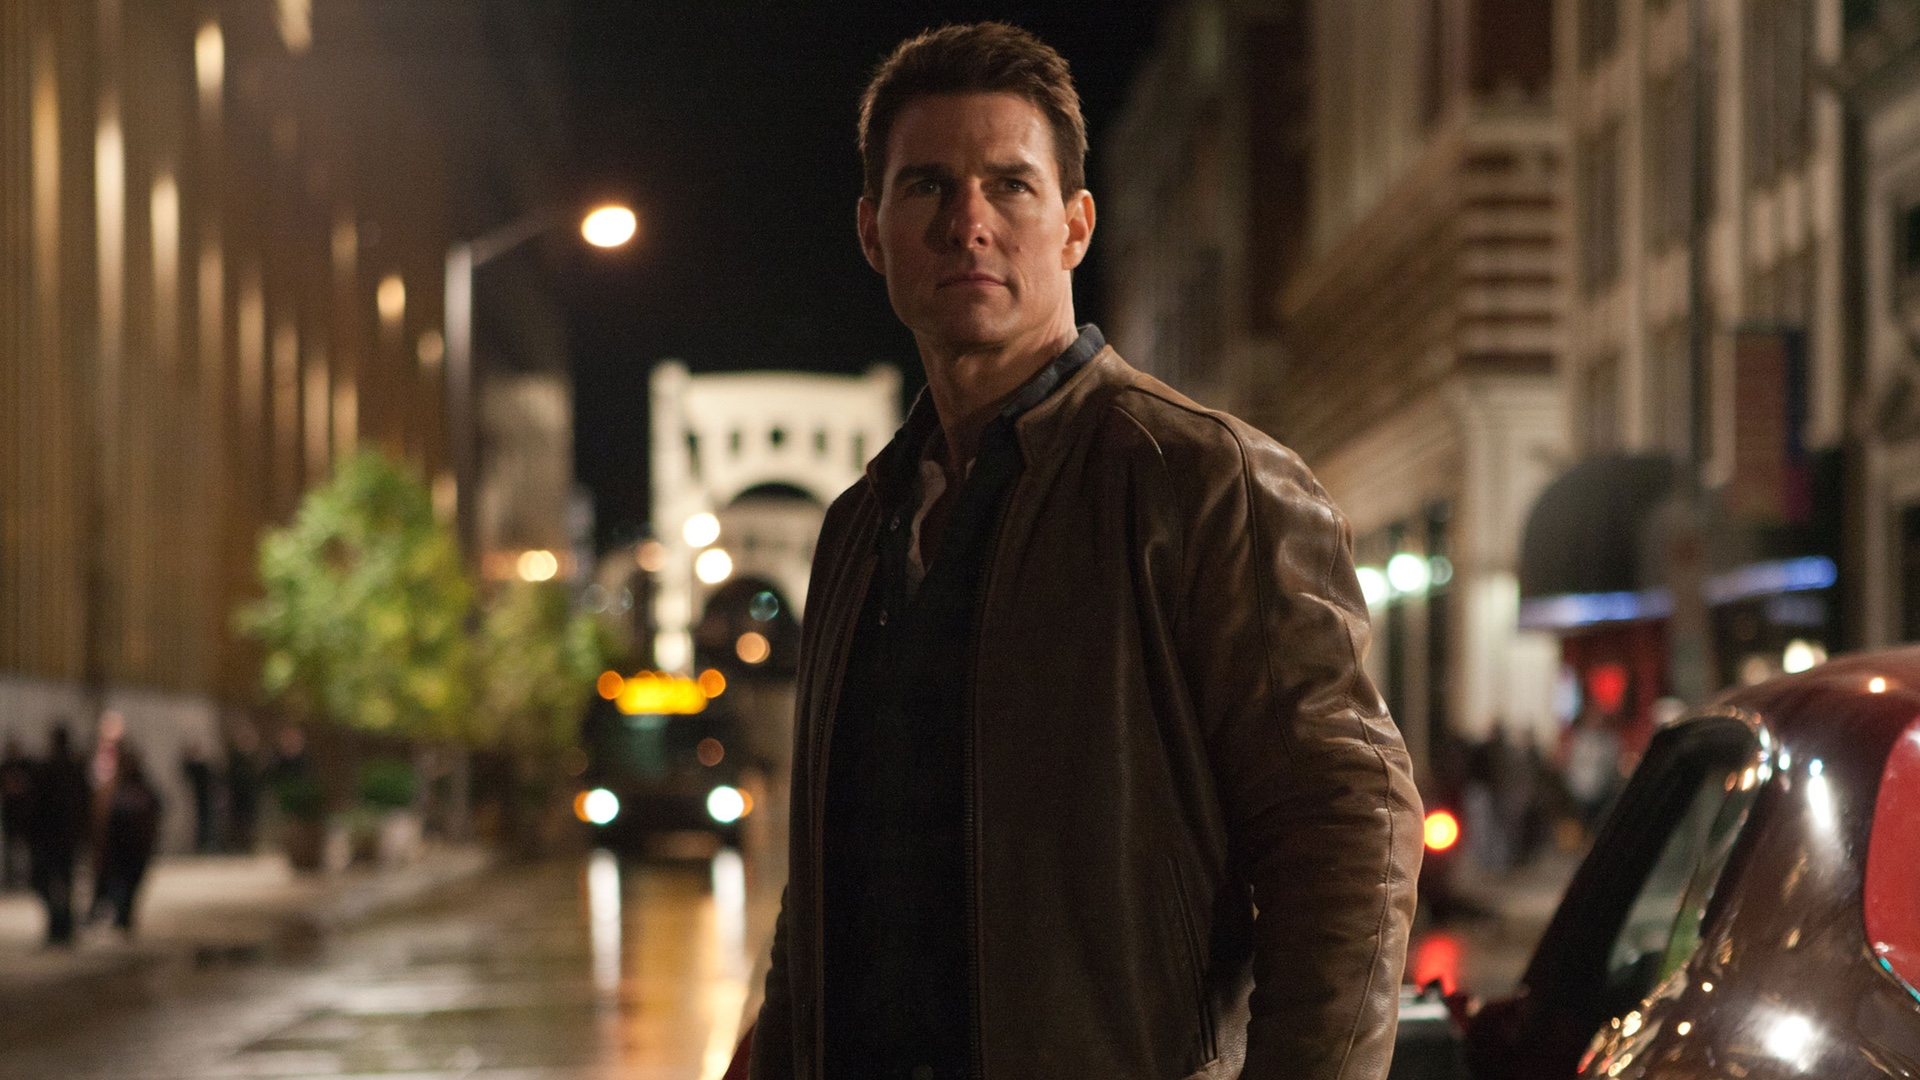 the-jack-reacher-tv-series-has-landed-at-amazon-social.jpg